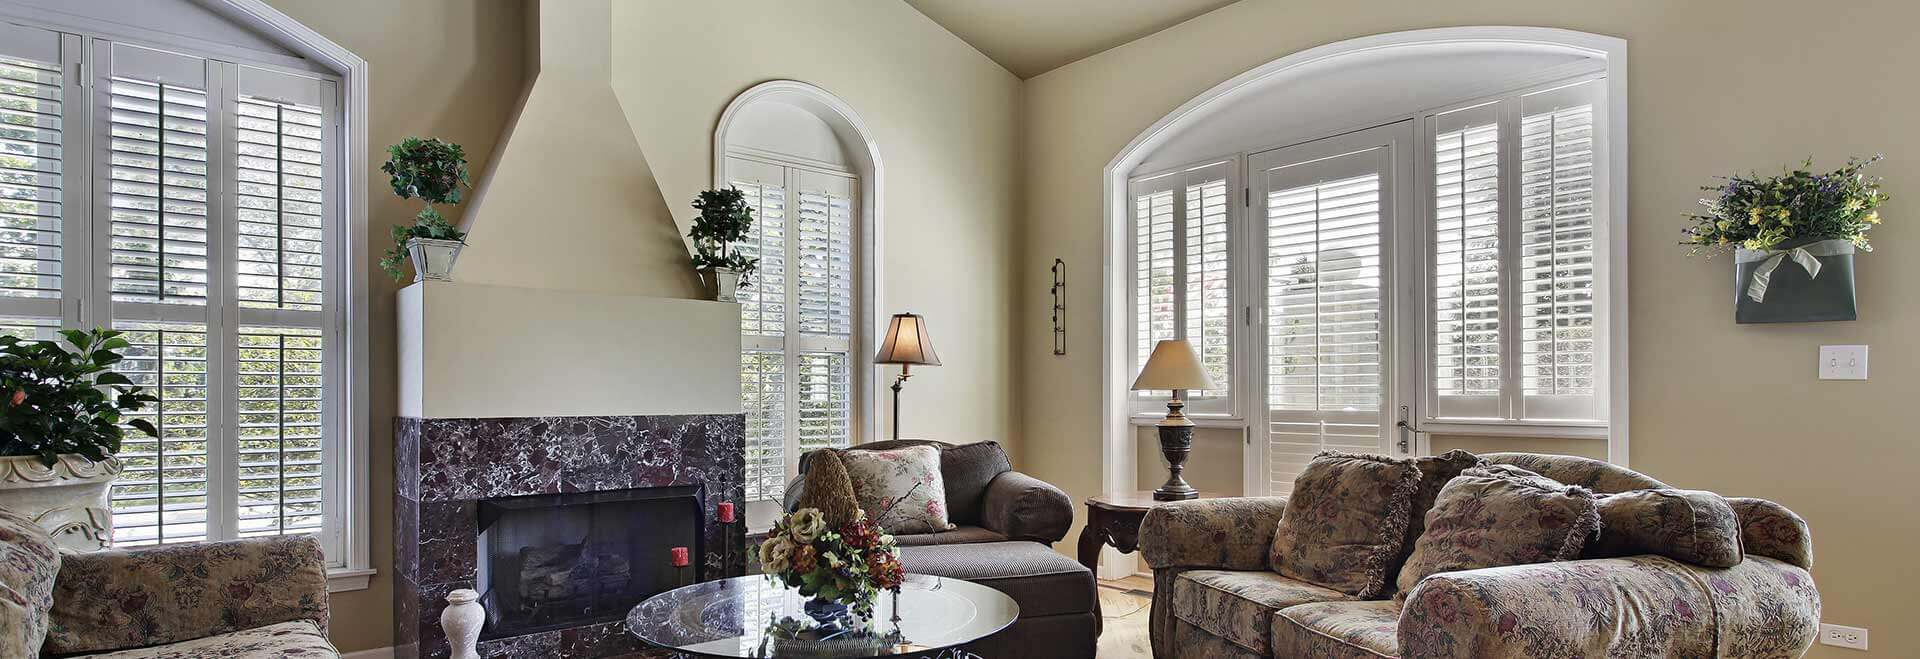 Advantages of Using Window Shutters